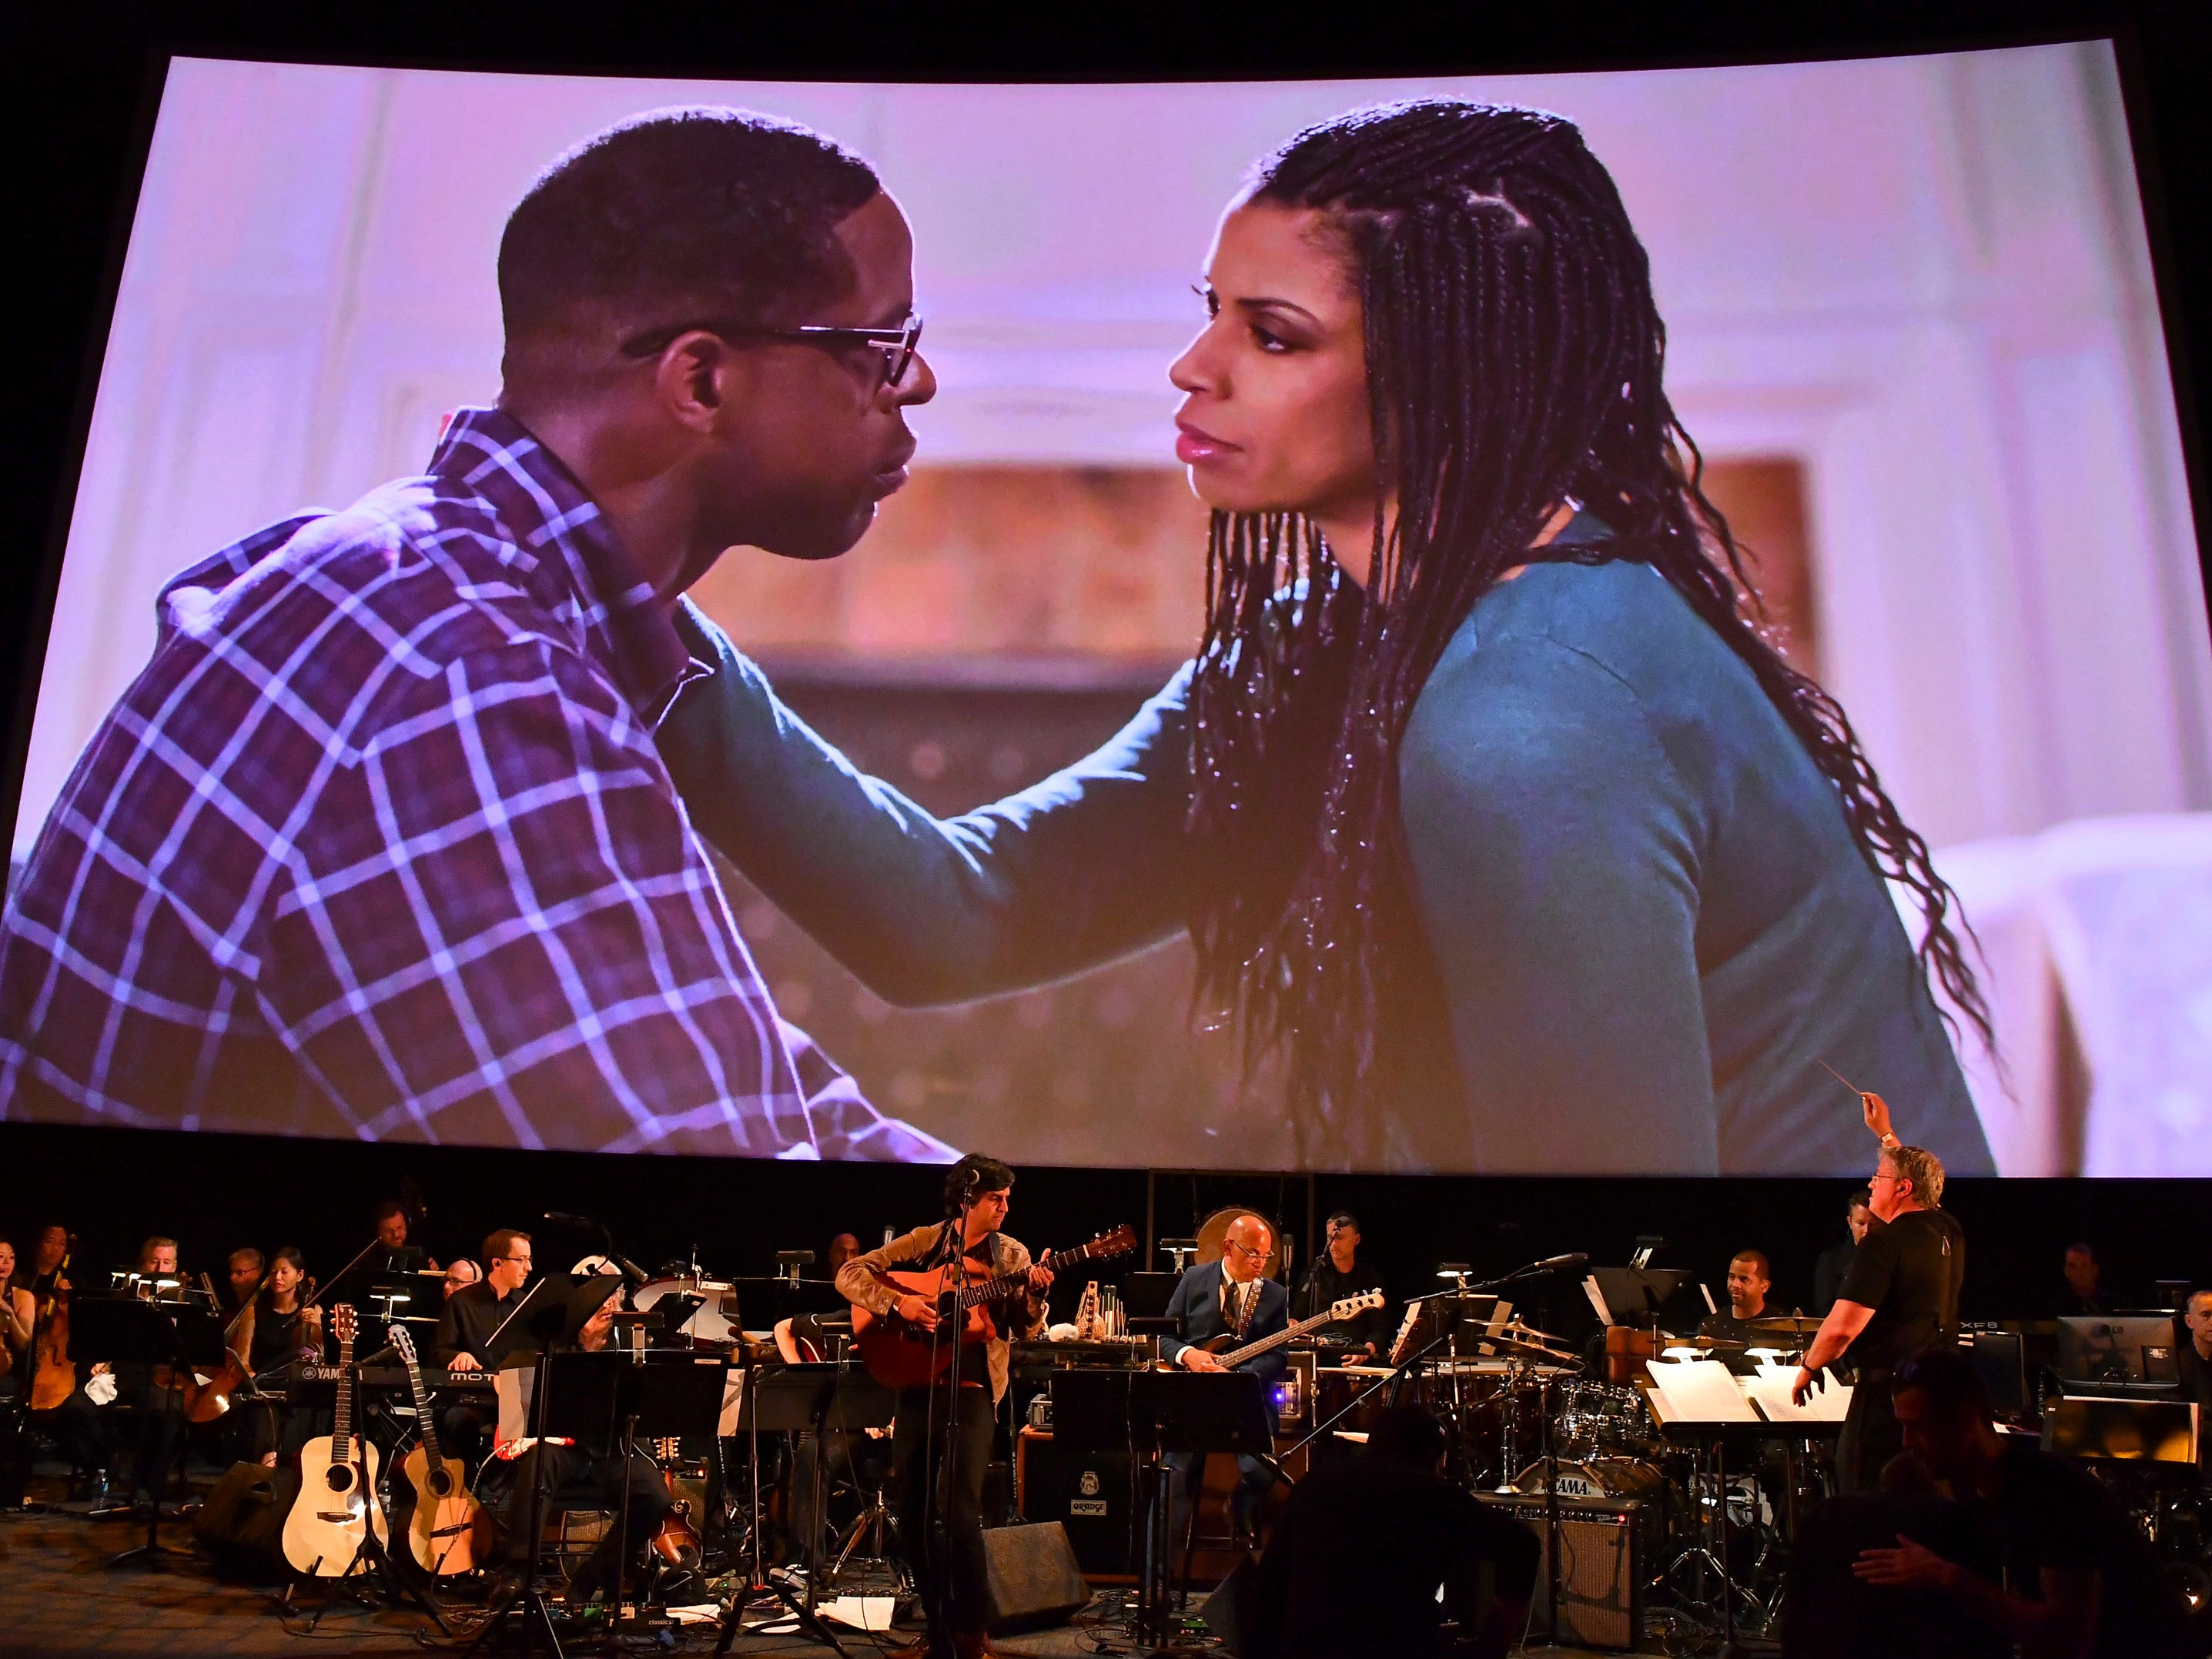 Conductor Mark Watters, right, and composer Siddhartha Khosla, center, perform the score from This Is Us during WORDS + MUSIC, presented Thursday, June 29, 2017 at the Television Academy's Wolf Theatre at the Saban Media Center in North Hollywood, Calif. Sterling K. Brown, left, and Susan Kelechi Watson are pictured on screen. (Photo by Vince Bucci/Invision for the Television Academy/AP Images)